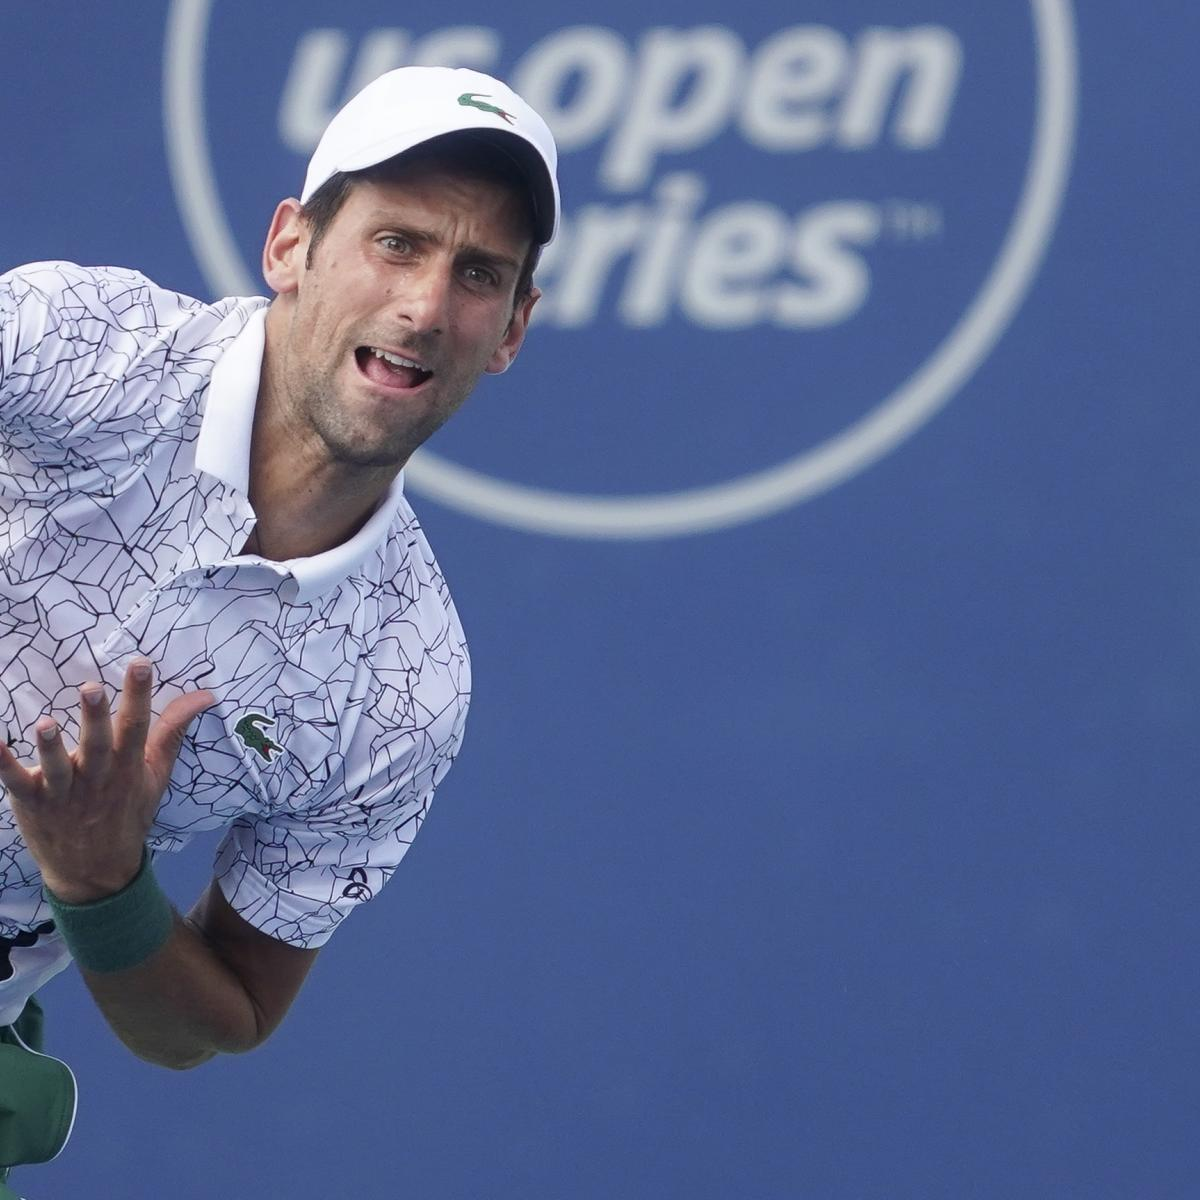 US Open Tennis 2018: Latest Odds and Predictions for Top Contenders